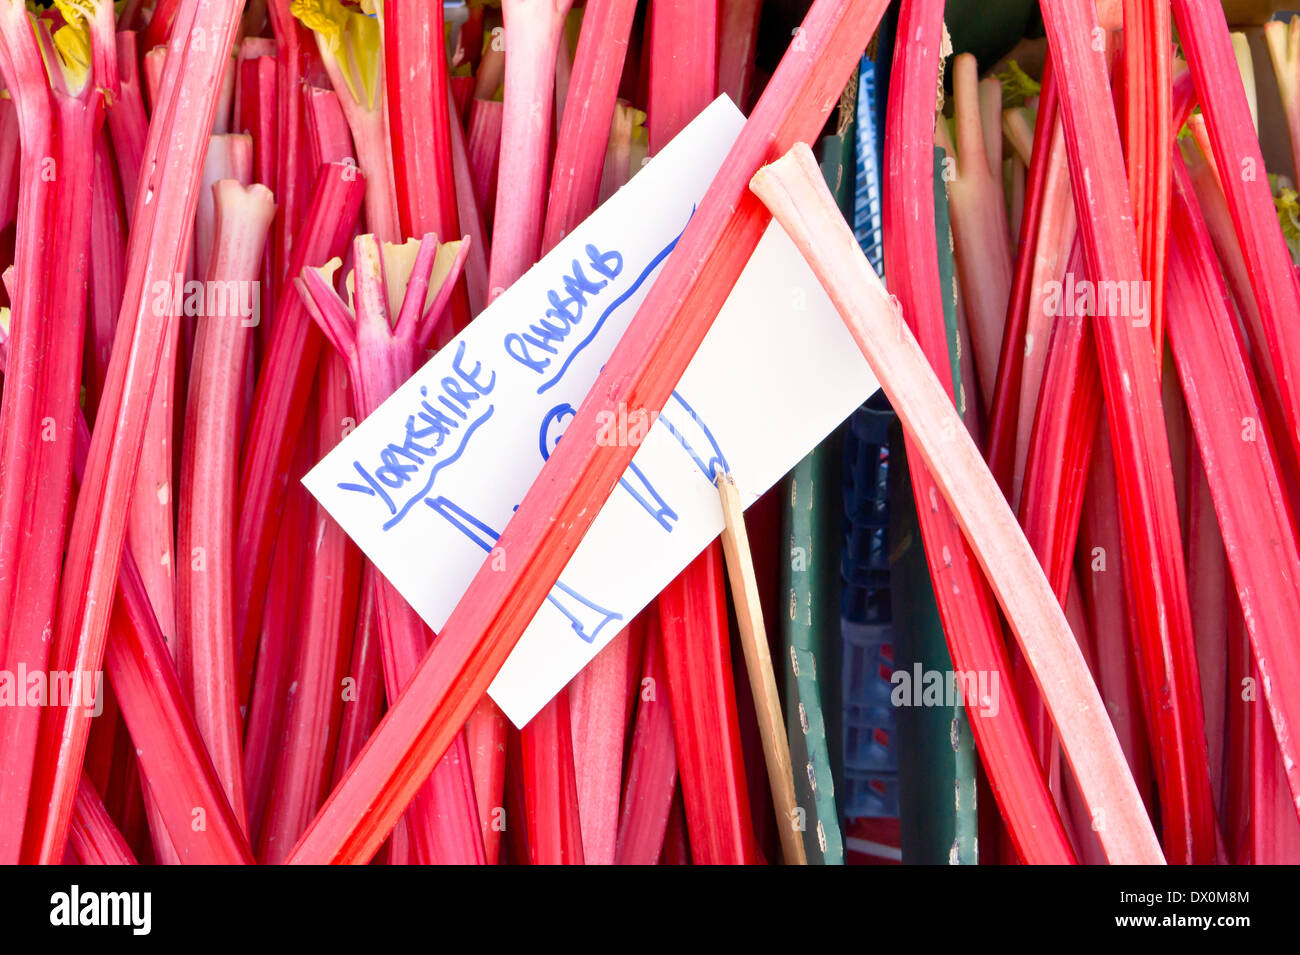 Fresh rhubarb for sale at a market Stock Photo